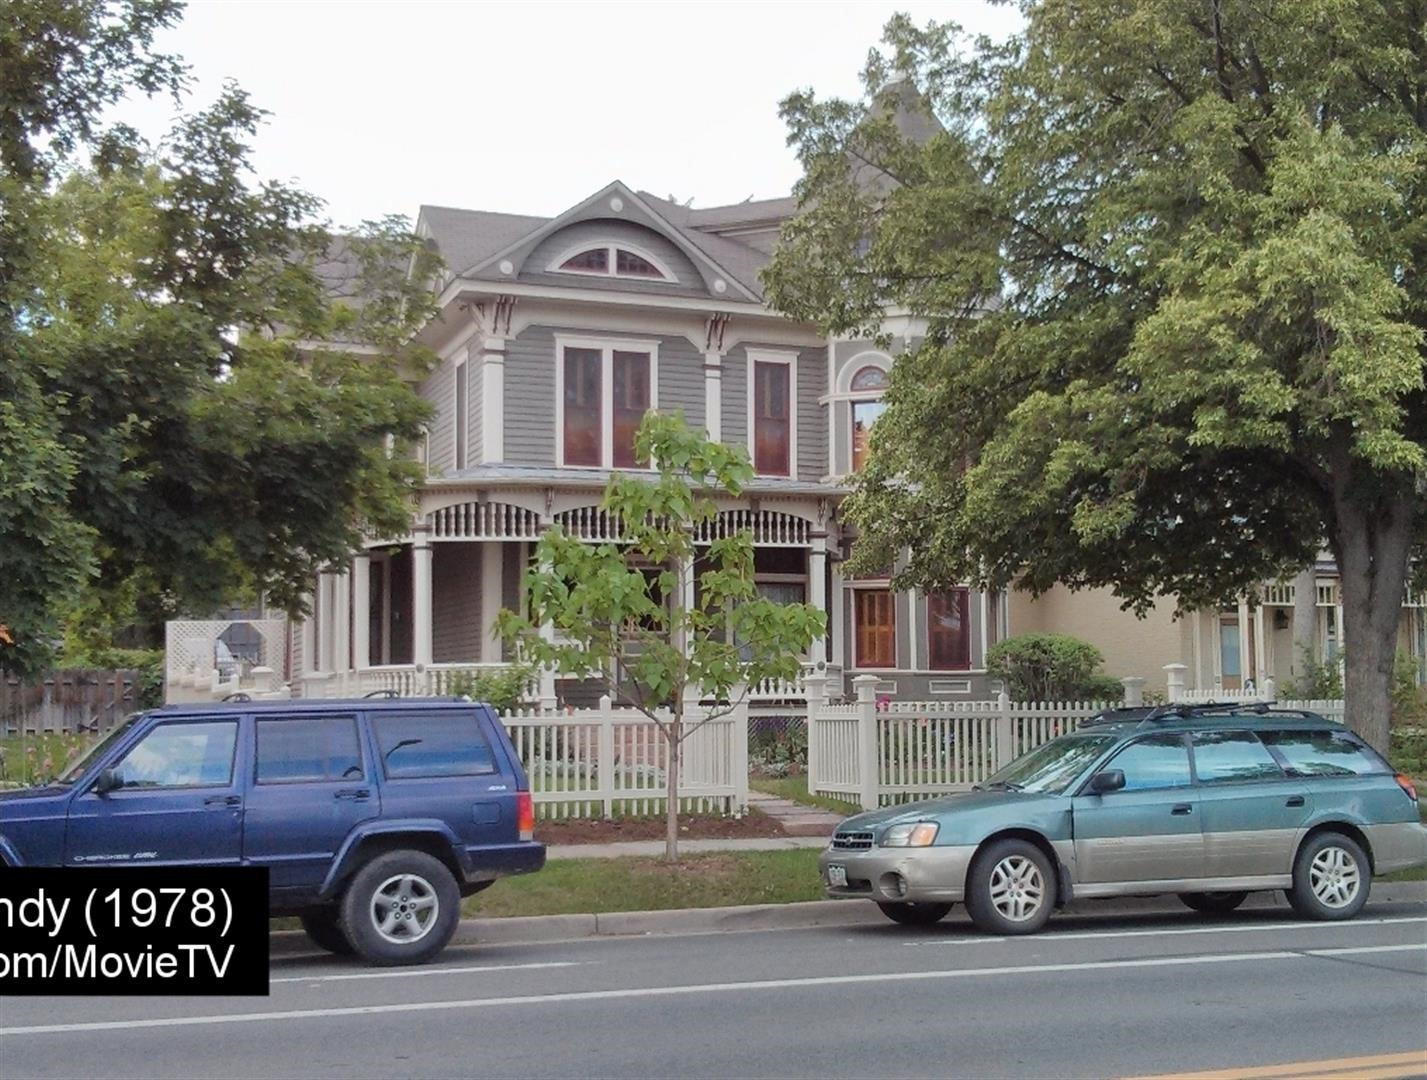 Mork & Mindy - BBBDescriptionBBB | MovieTVLocations.Tavres.com